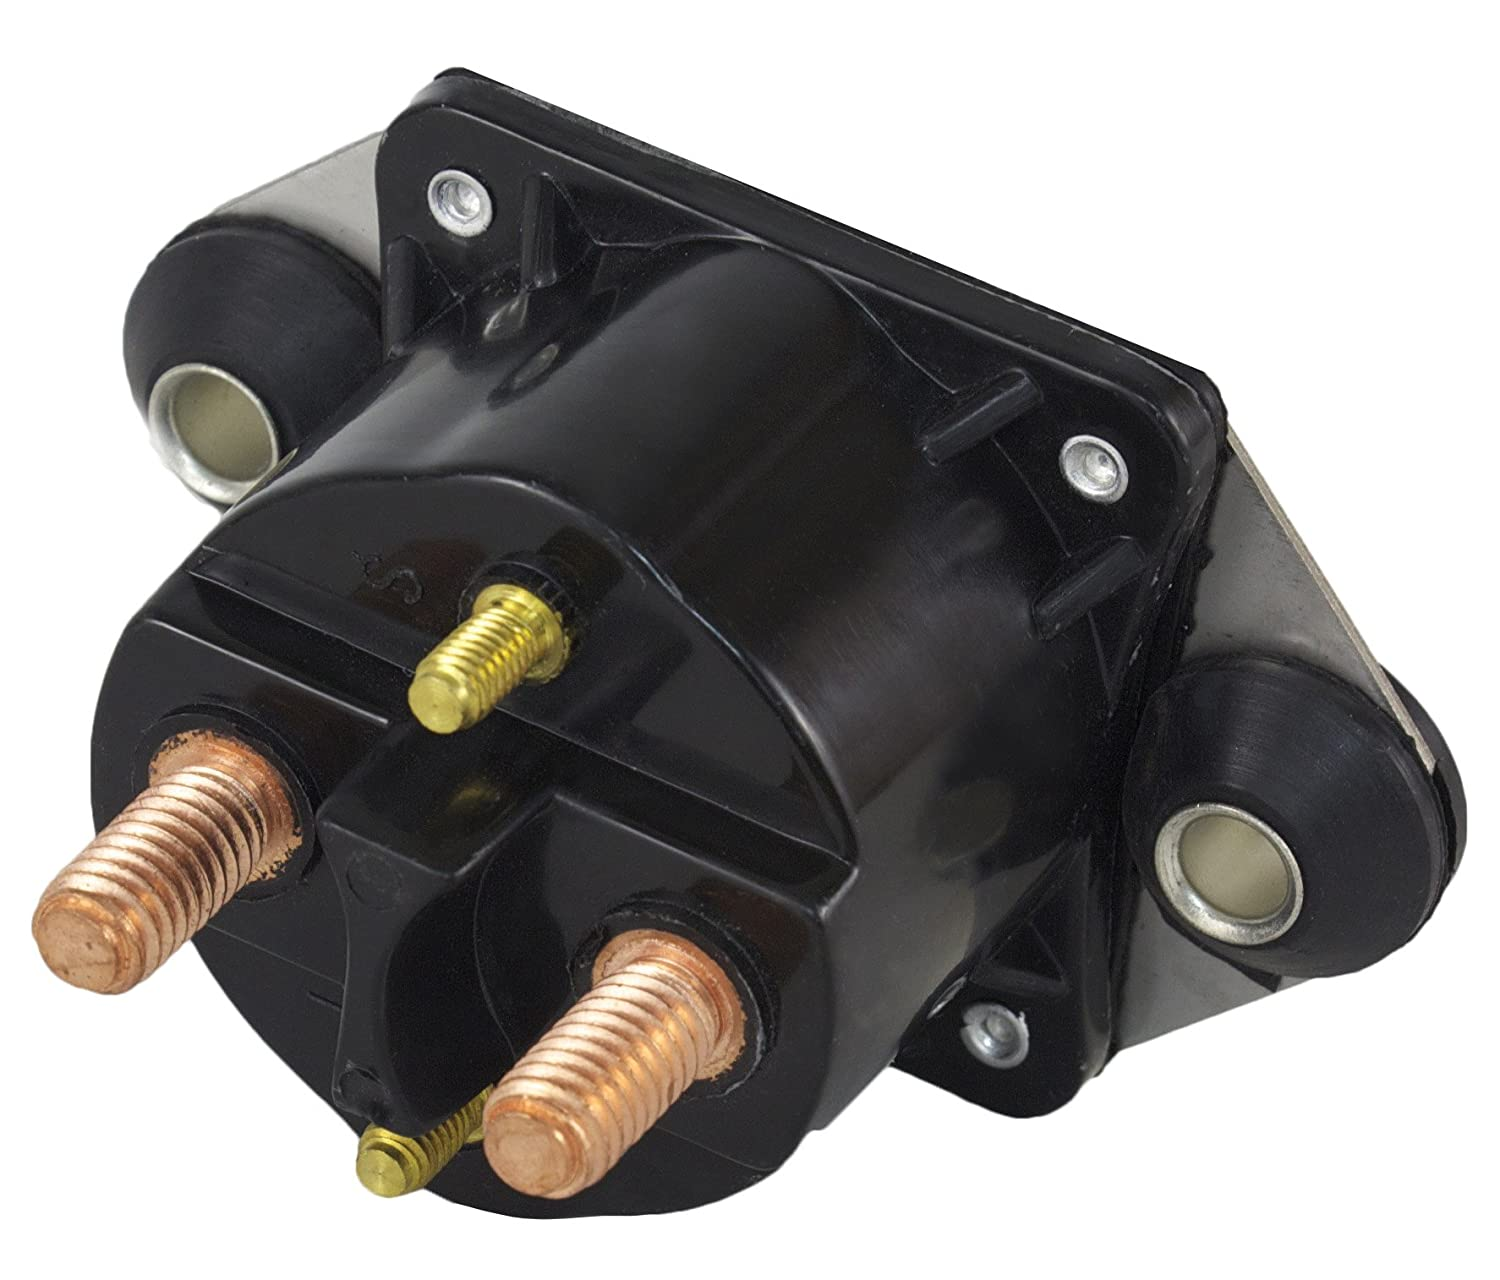 New Starter Solenoid Fits Mercury Marine 65 75 80 90 100 Wiring Diagram For A 1971 115 105 125 135 V150 18 5834 Automotive